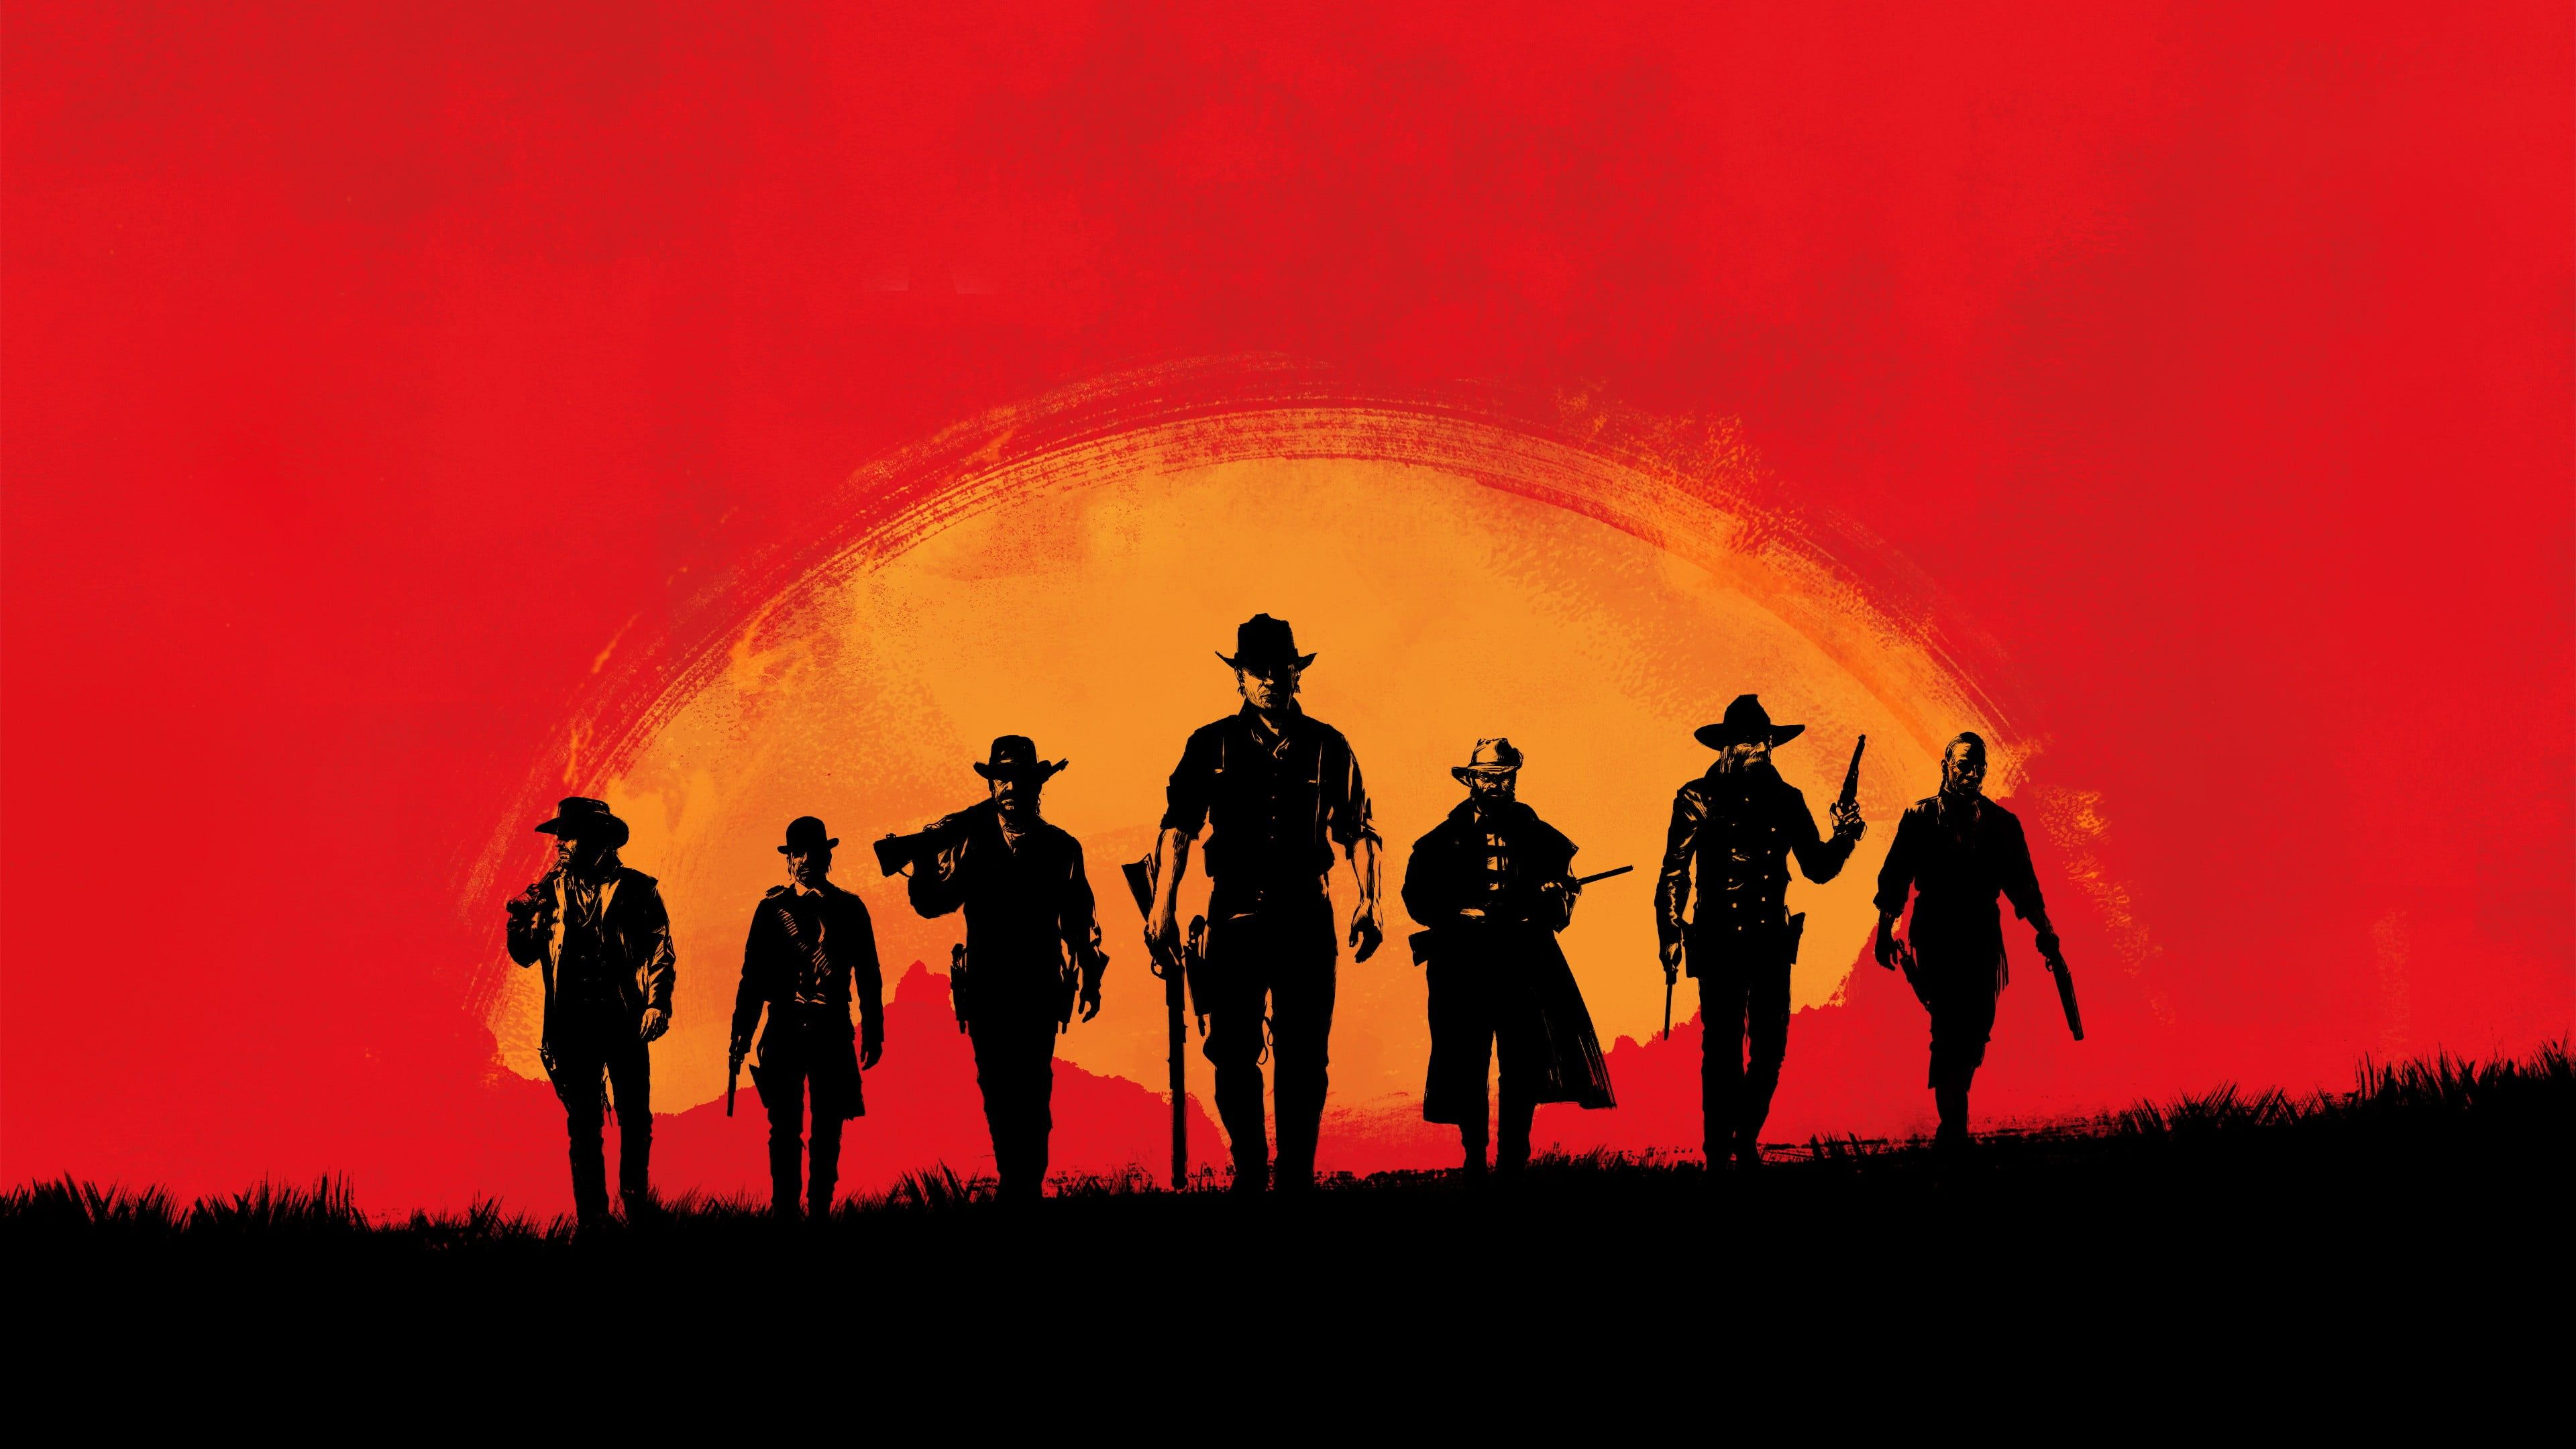 Yellow Red And Black Group Of Men Digital Wallpaper Red Dead Redemption Red Gamers Gamer Video Ga Red Dead Redemption Ii Red Dead Online Digital Wallpaper